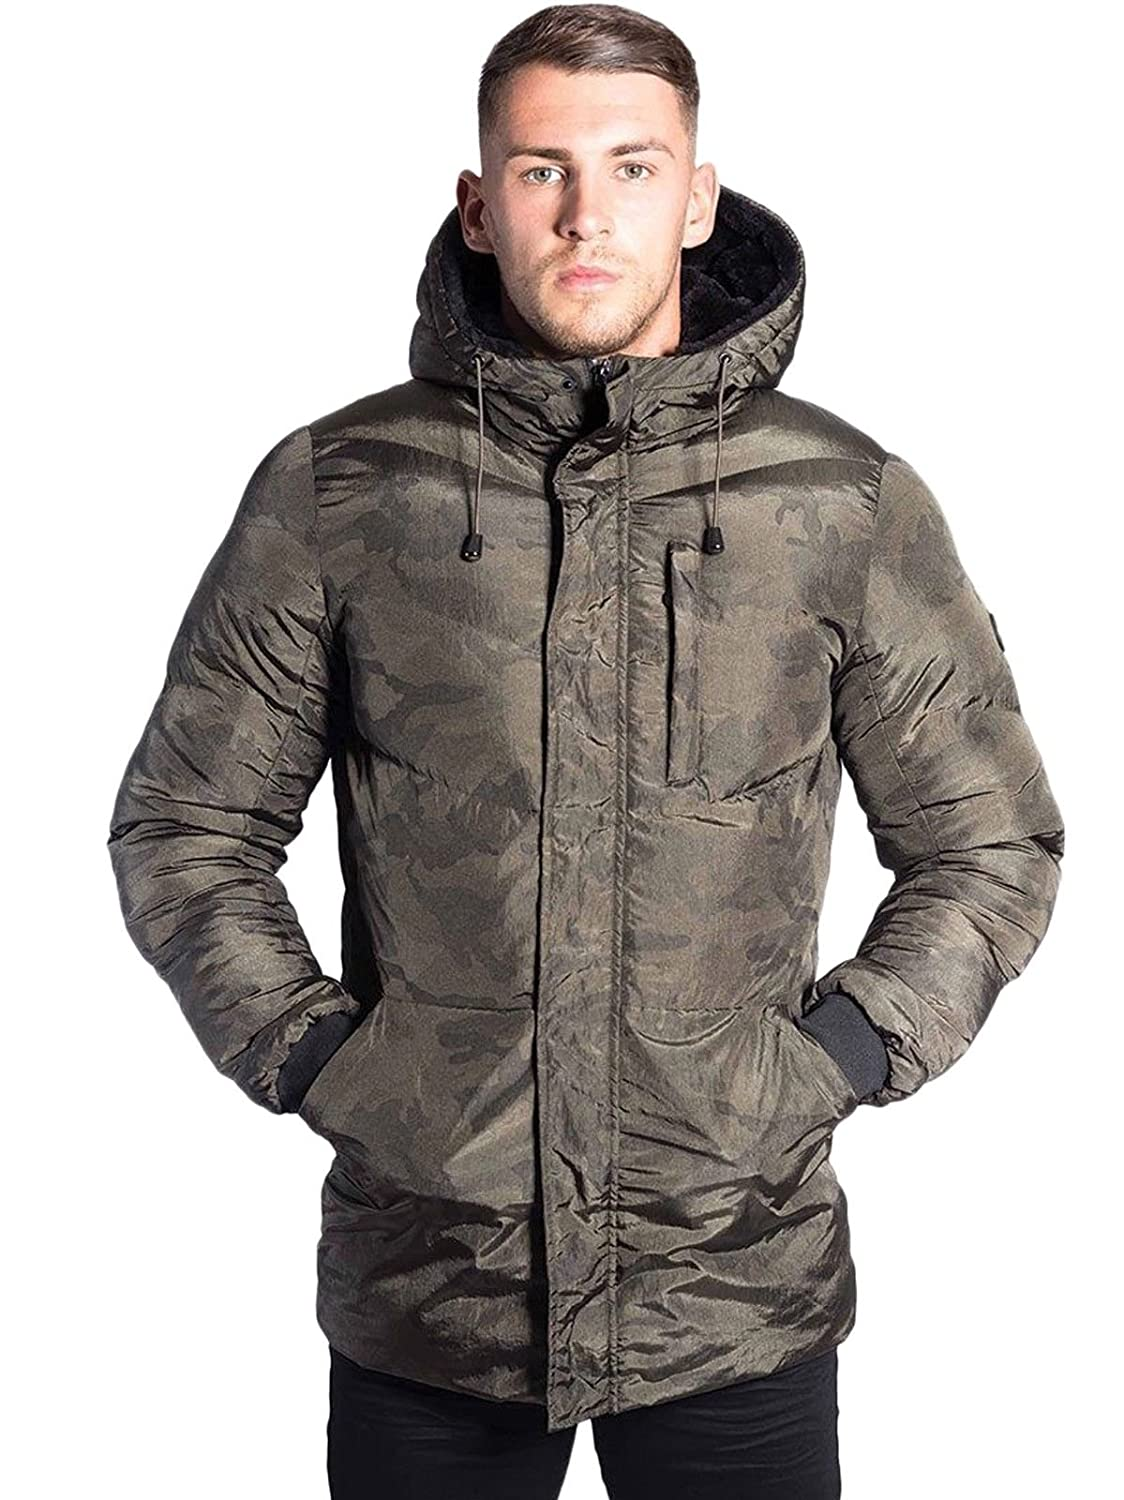 d297a7eb0cf34 Foray Mens Winter Jacket Longline Fade Camouflage Hooded Hoody Padded  Bomber Puffer Bubble Warm Quilted Fur Hood Lining Parka Coat Camo:  Amazon.co.uk: ...